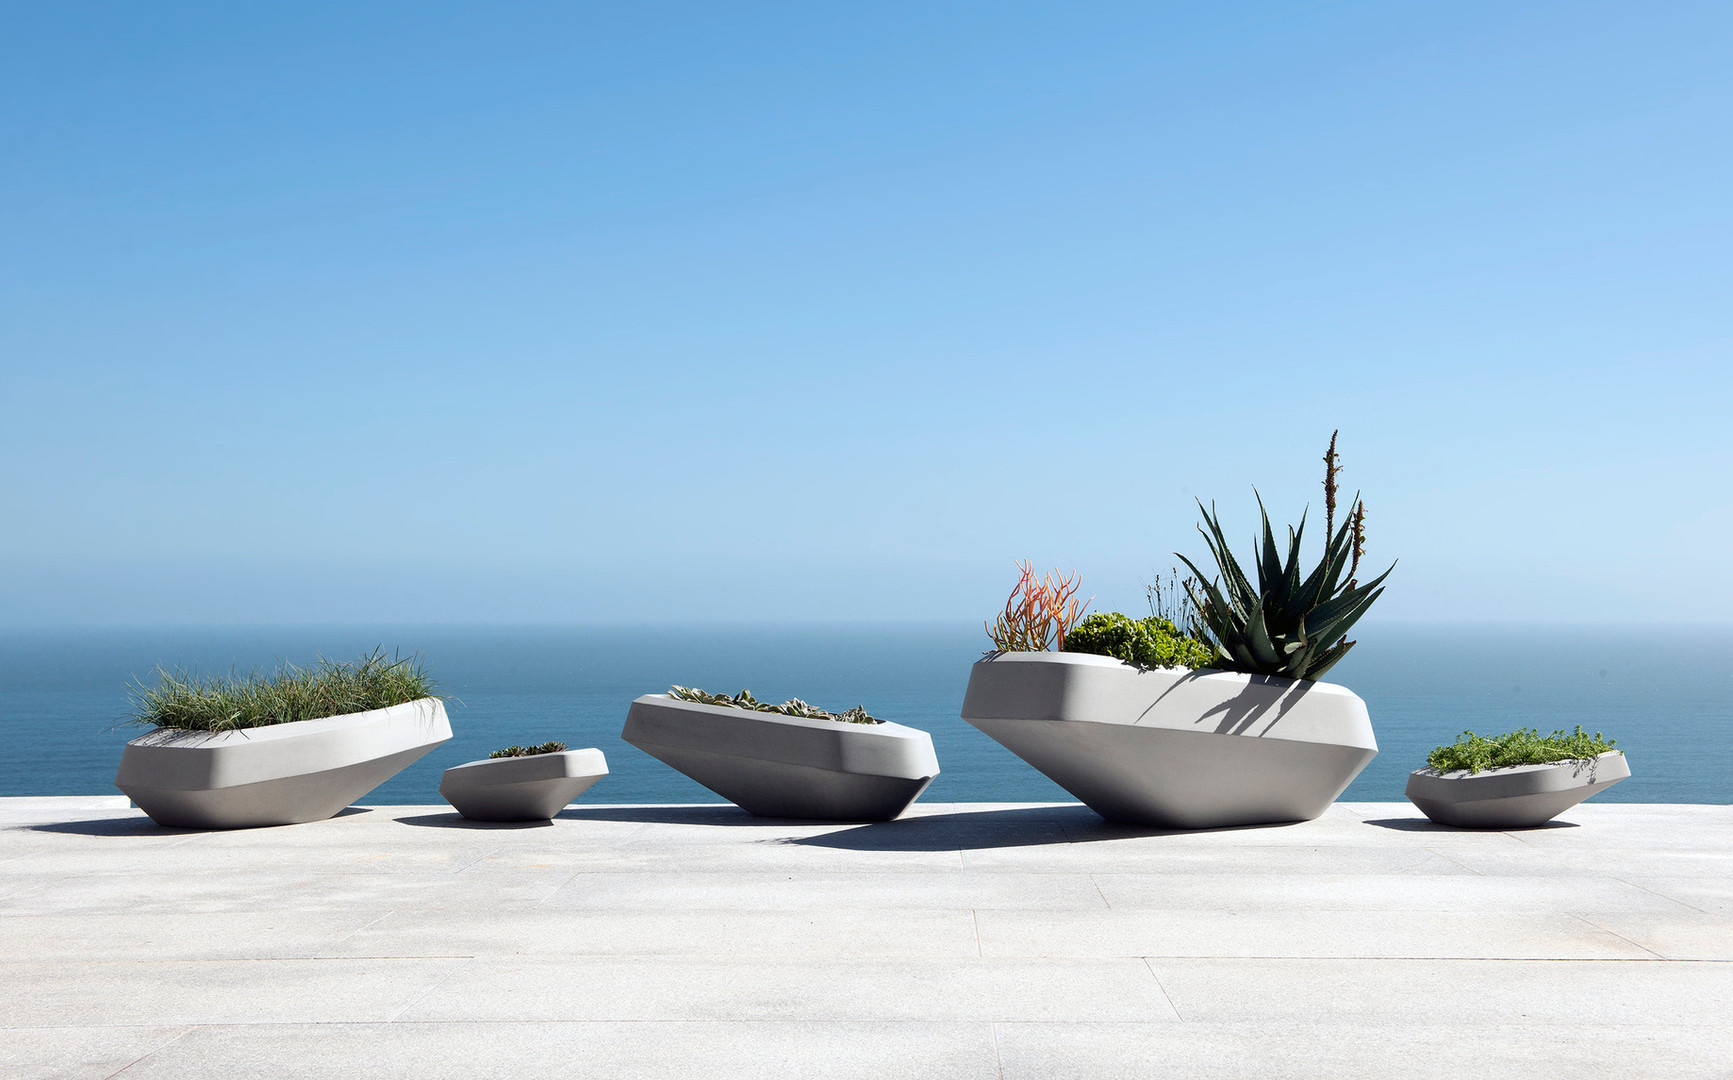 Steen Planters by SAOTA for Indigenus